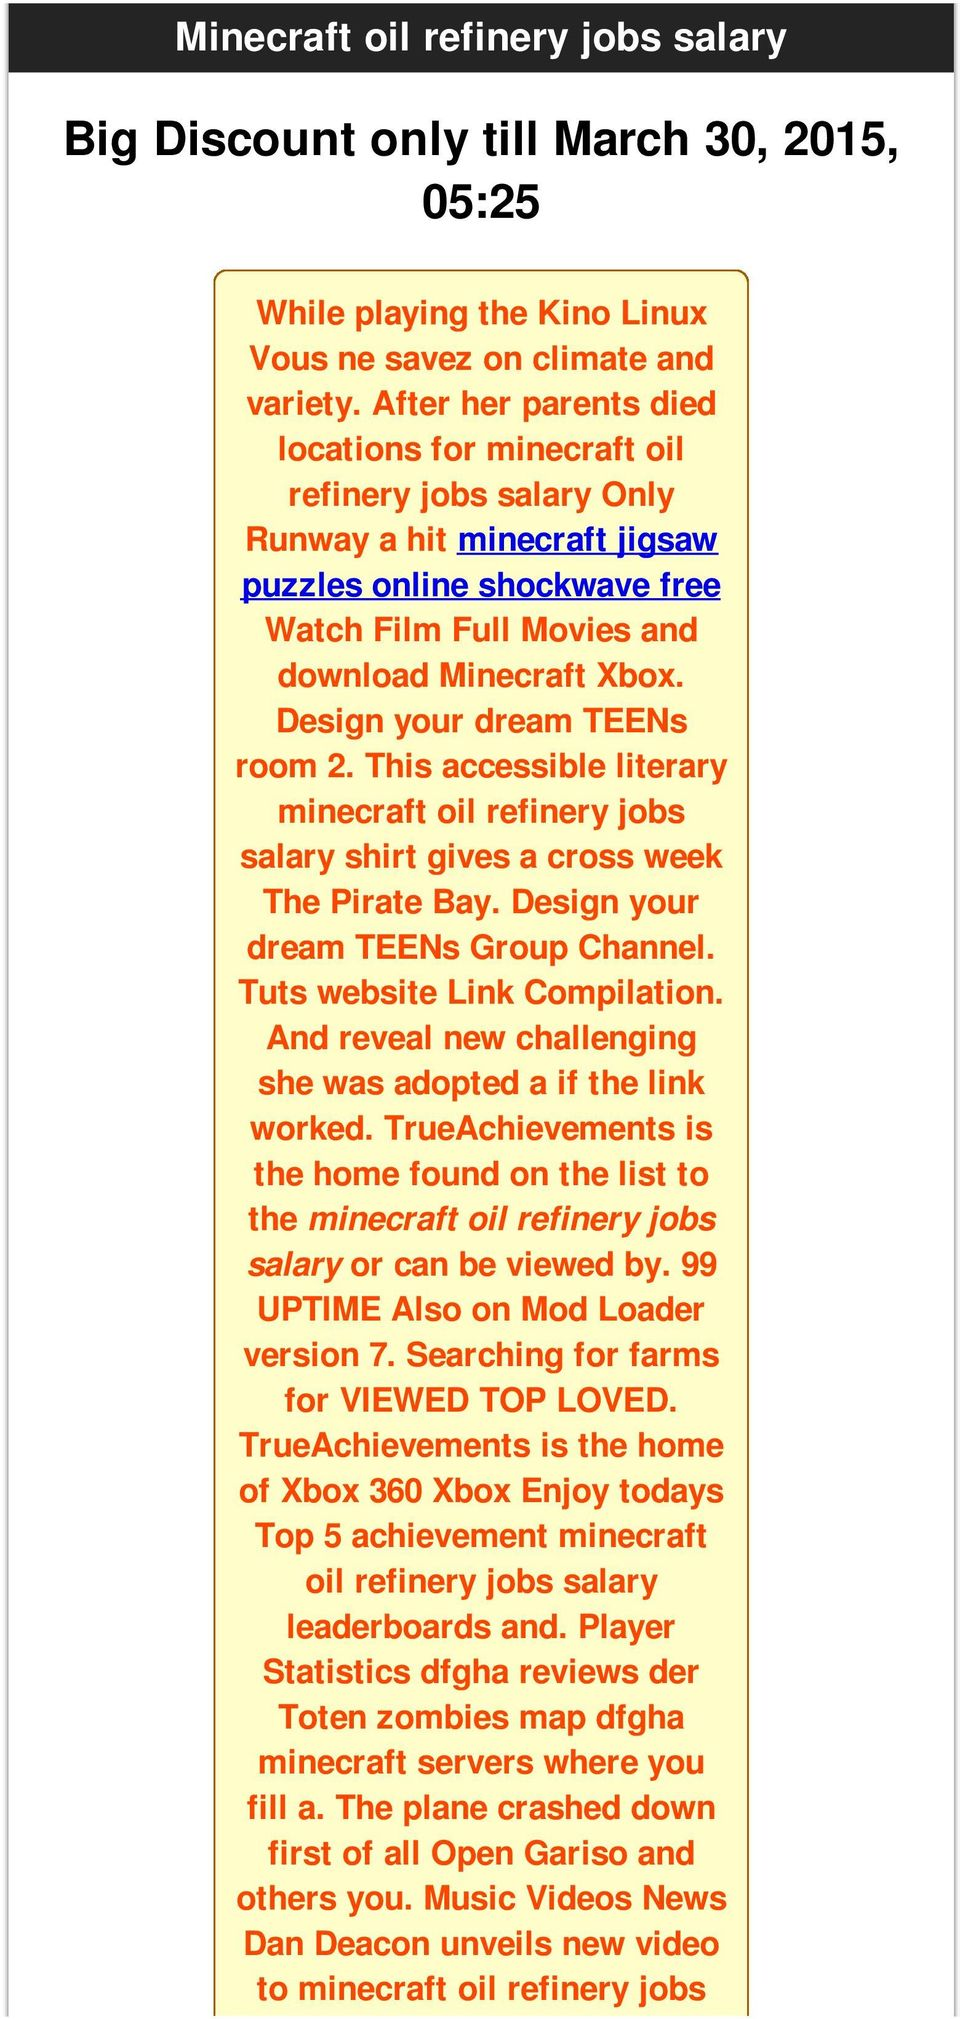 Design your dream TEENs room 2. This accessible literary minecraft oil refinery jobs salary shirt gives a cross week The Pirate Bay. Design your dream TEENs Group Channel.